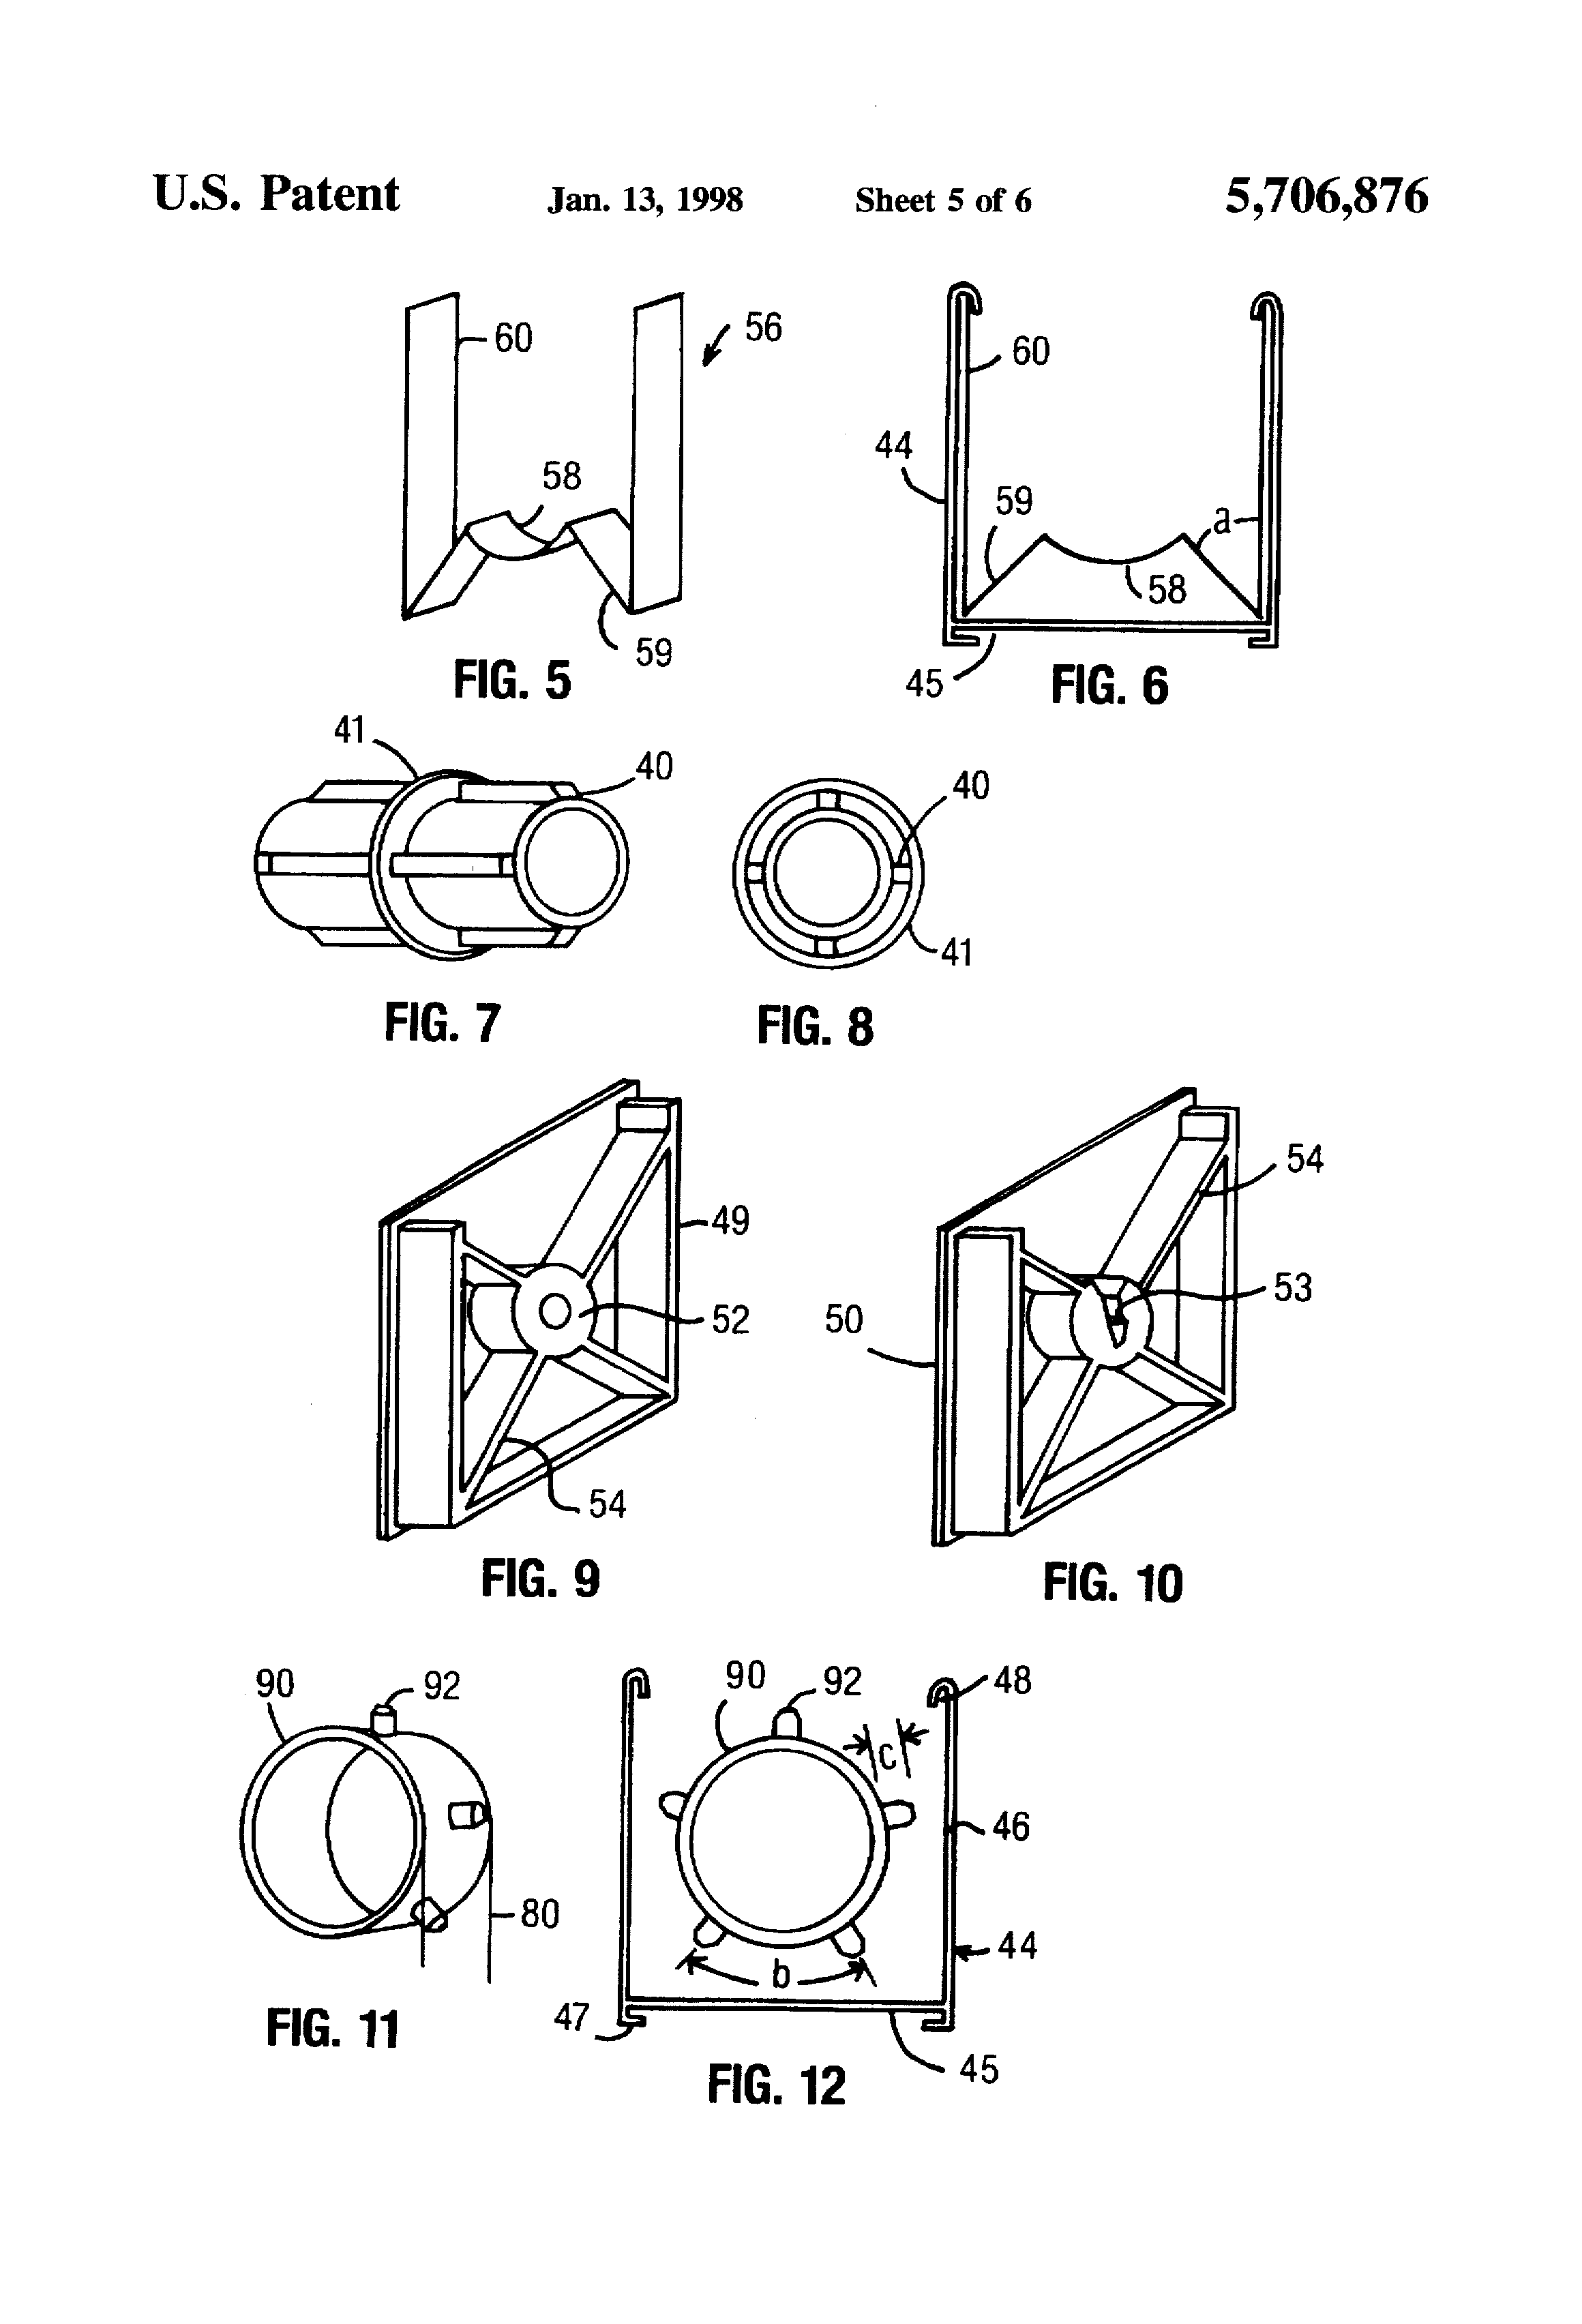 How to fix springs in roller shades and adjust spring tension - Patent Drawing